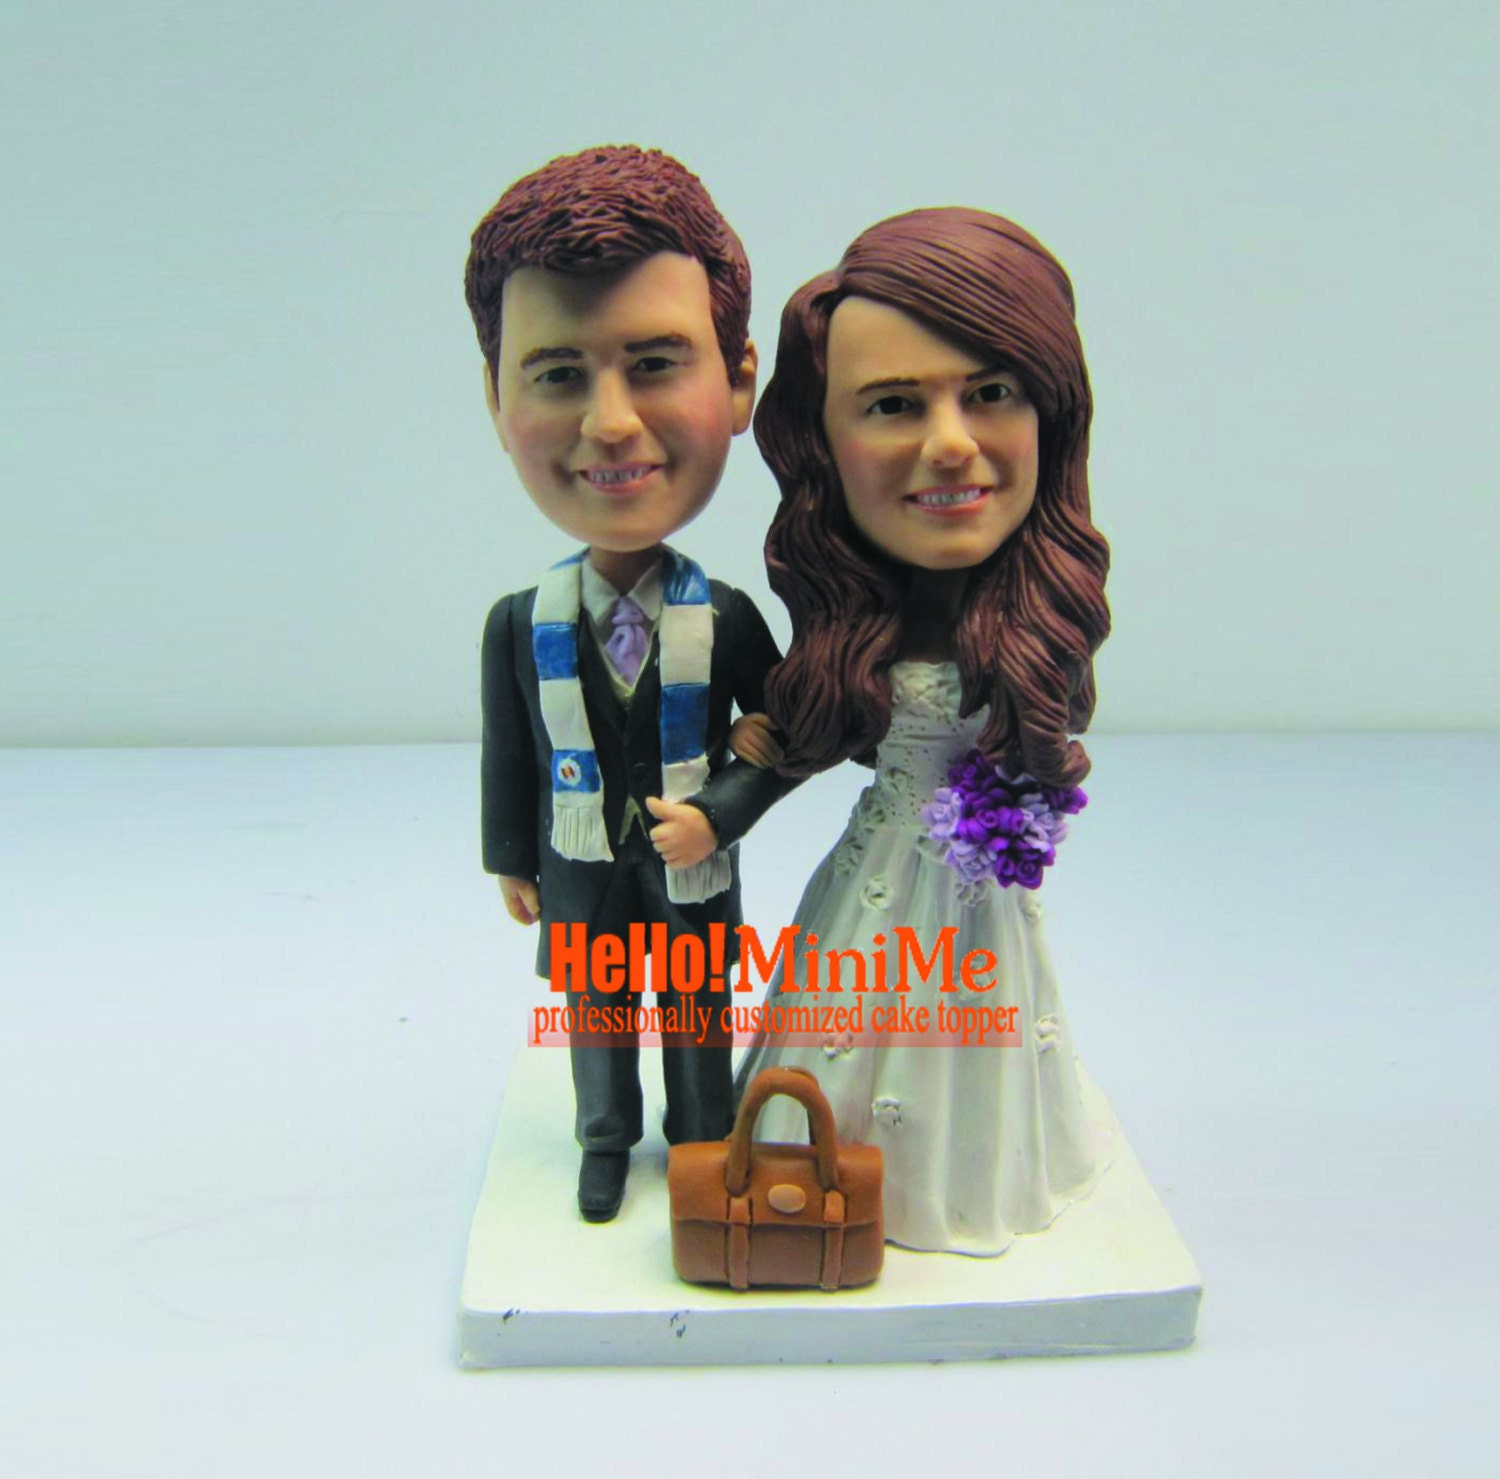 bobblehead wedding cake topper wedding cake topper bobblehead custom cake topper bobble ehad 1994